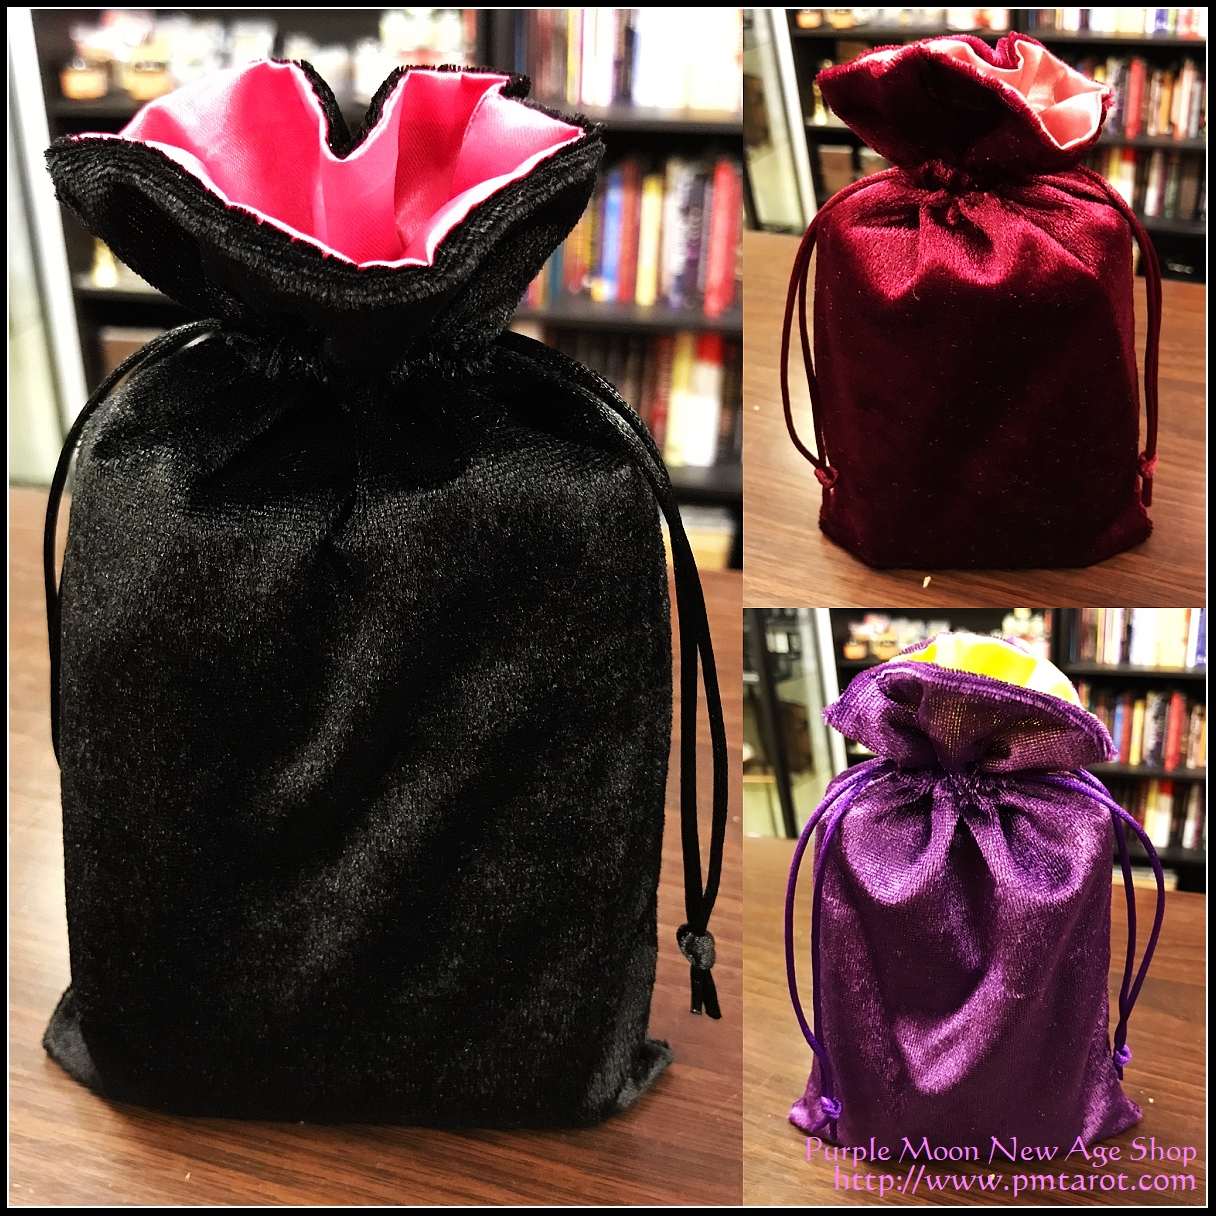 Satin and Velvet Tarot Bag